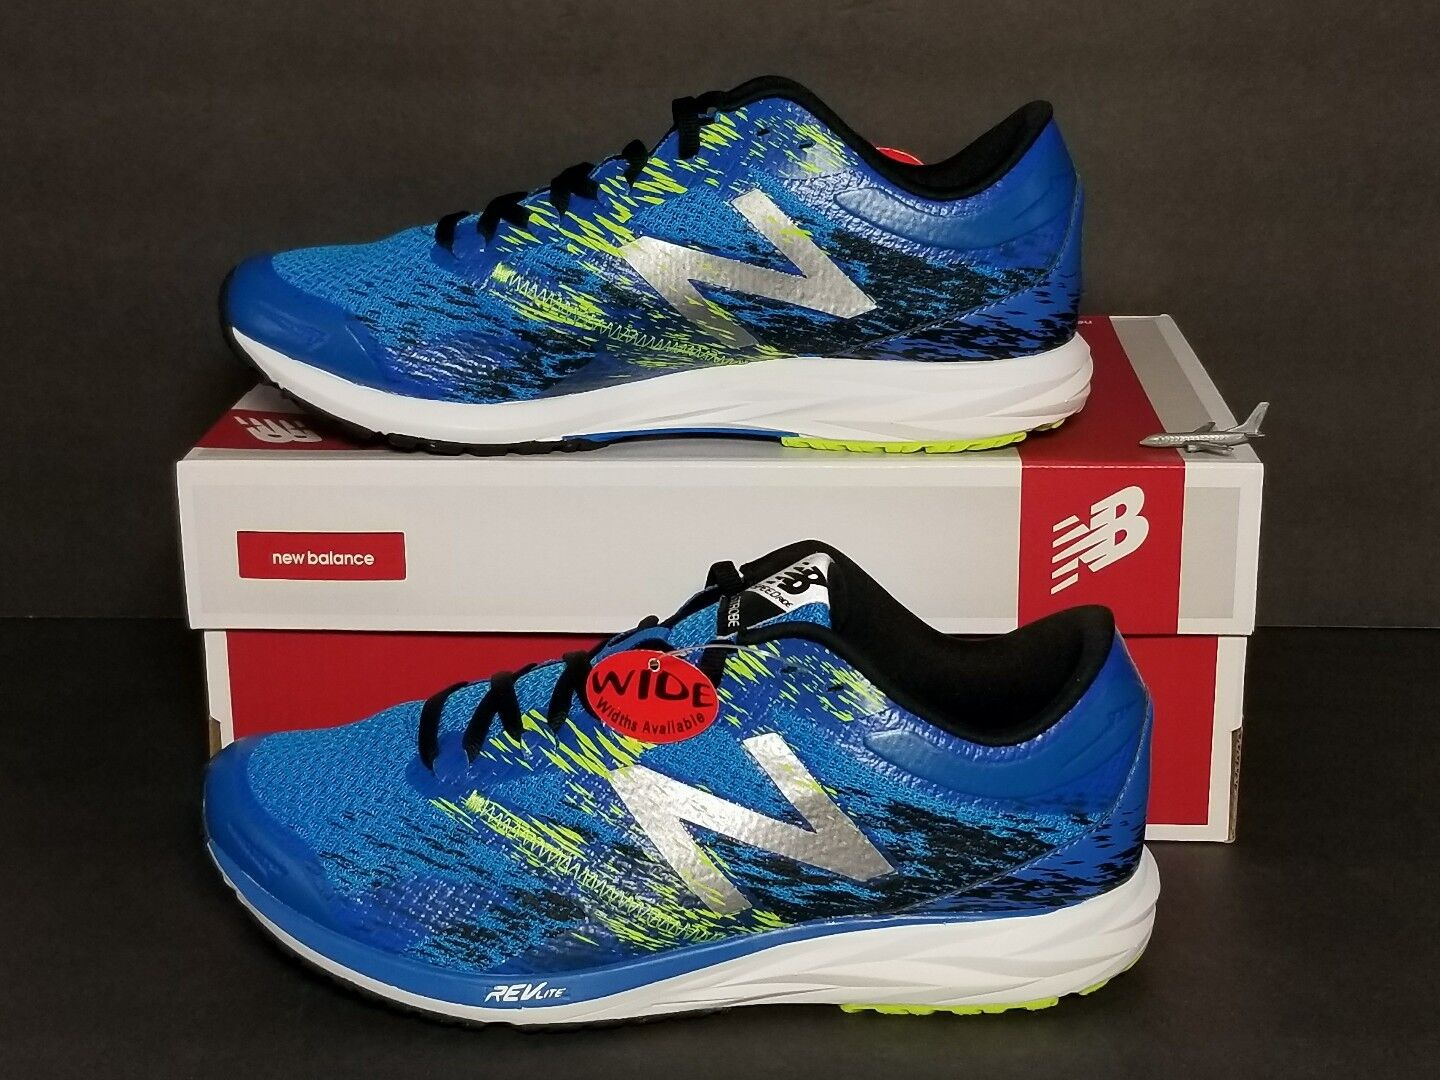 NEW BALANCE MEN'S   W I D E   RUNNING SHOES MULTIPLE SIZES  NEW   BOX  MSTROLE1